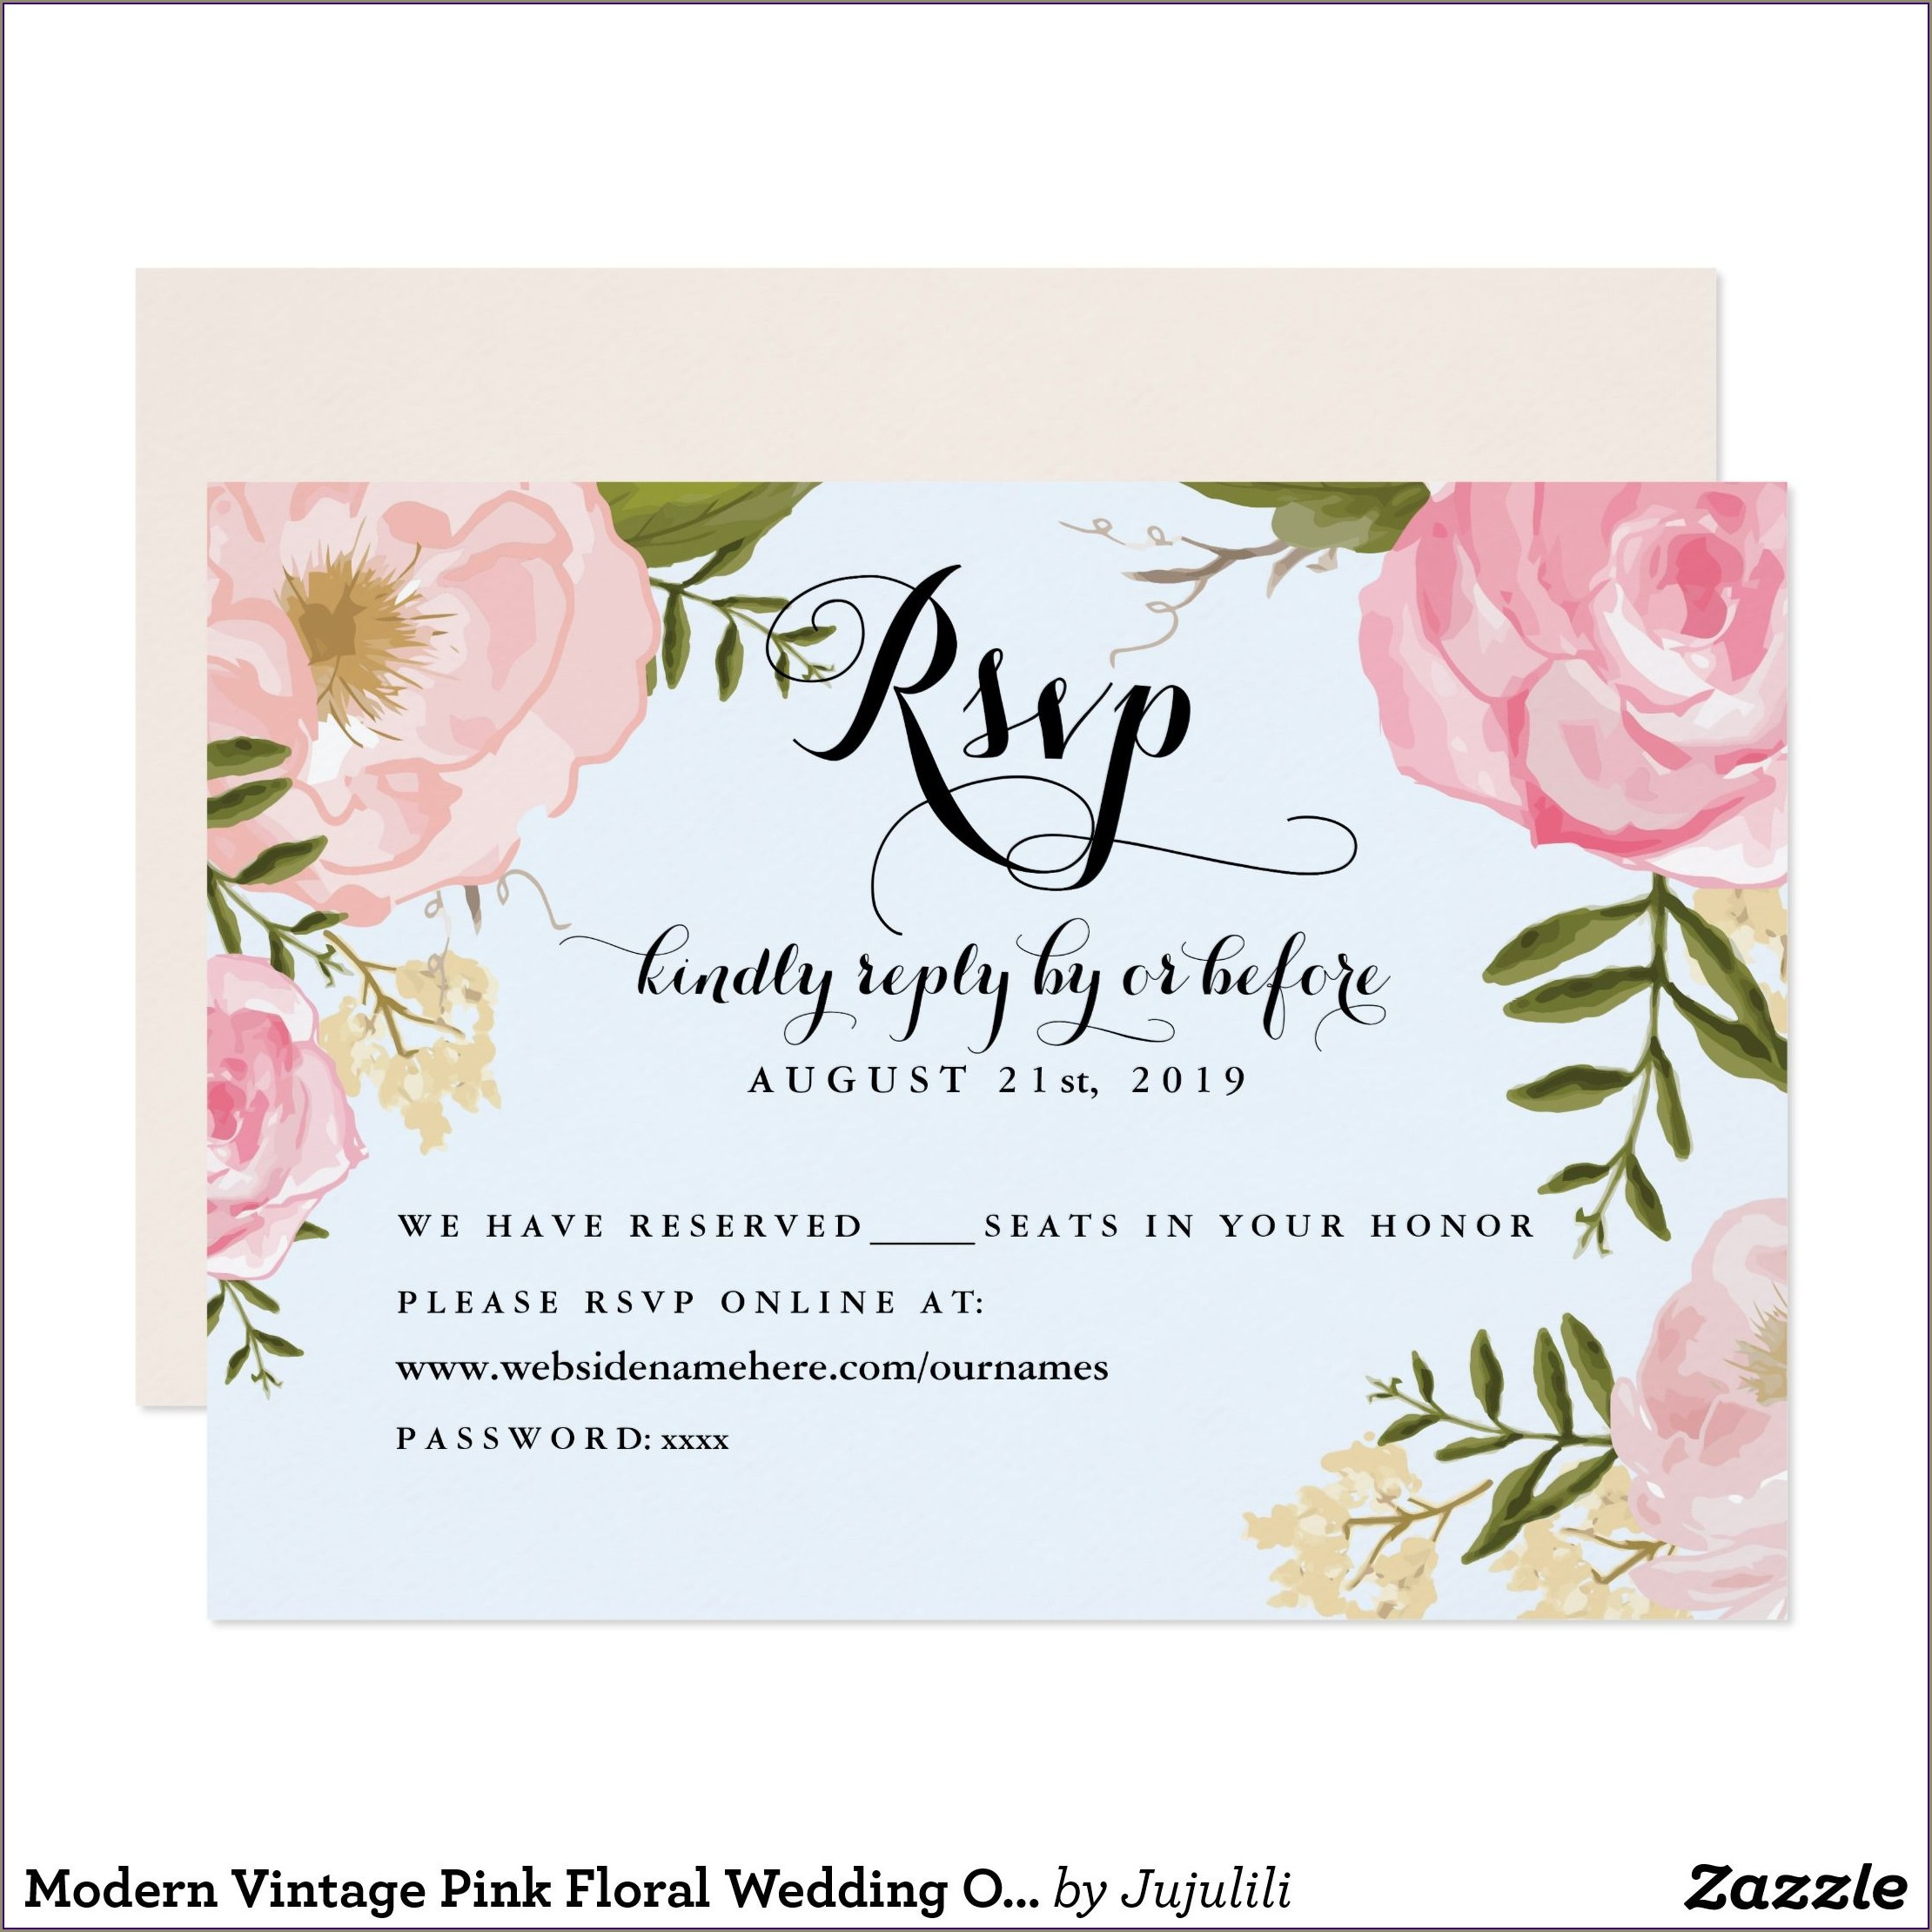 Electronic Wedding Invitations With Rsvp